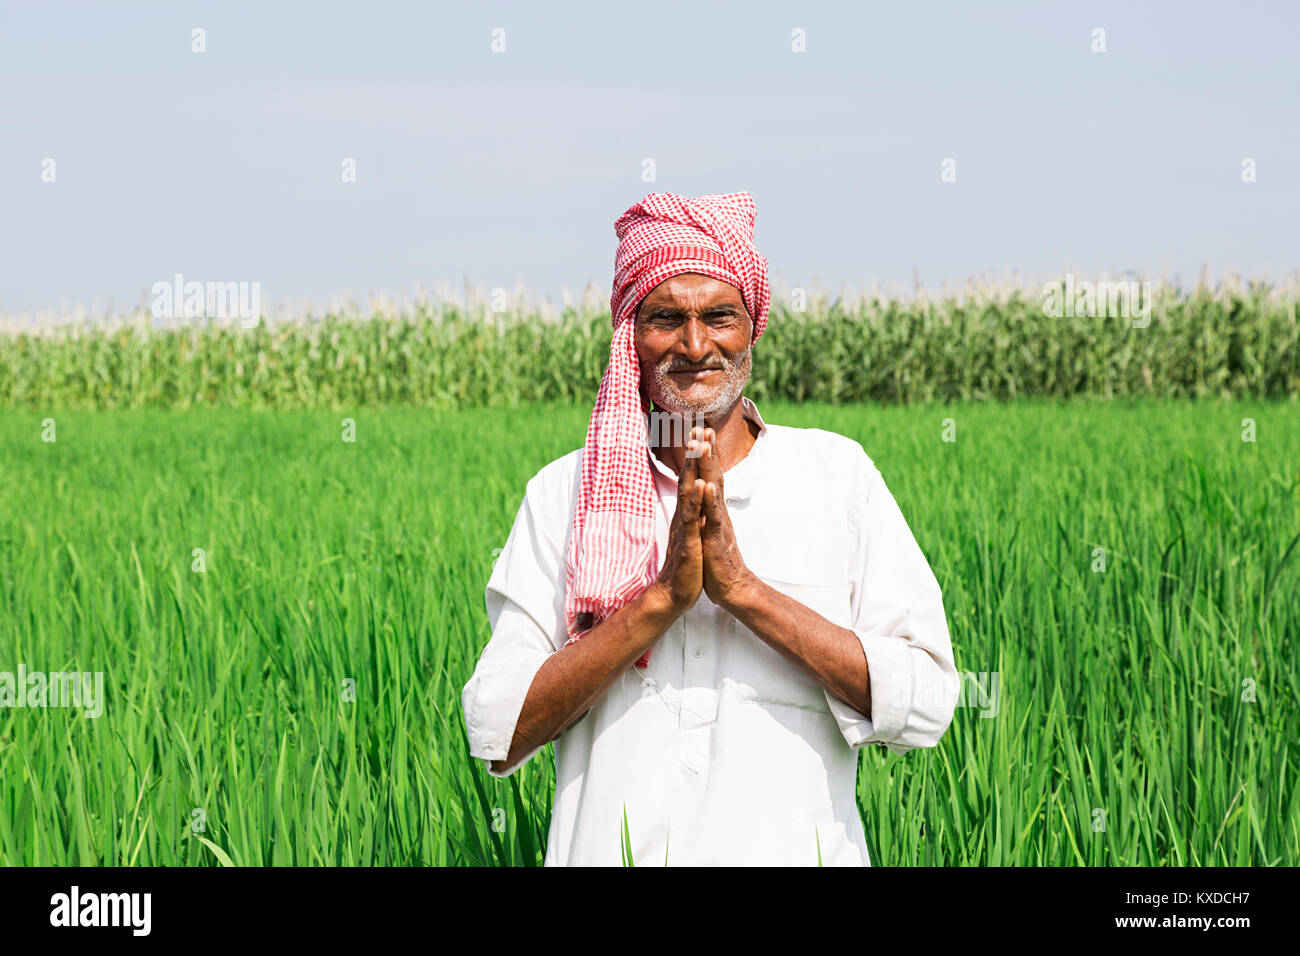 hindu single men in many farms A few months ago, i saw an ad for asiandatecom and i am glad i decided to give it a shot the site is seamless, safe, and easy to find people to connect with the mobile app also makes it easy for me to stay in touch when i am on the go.